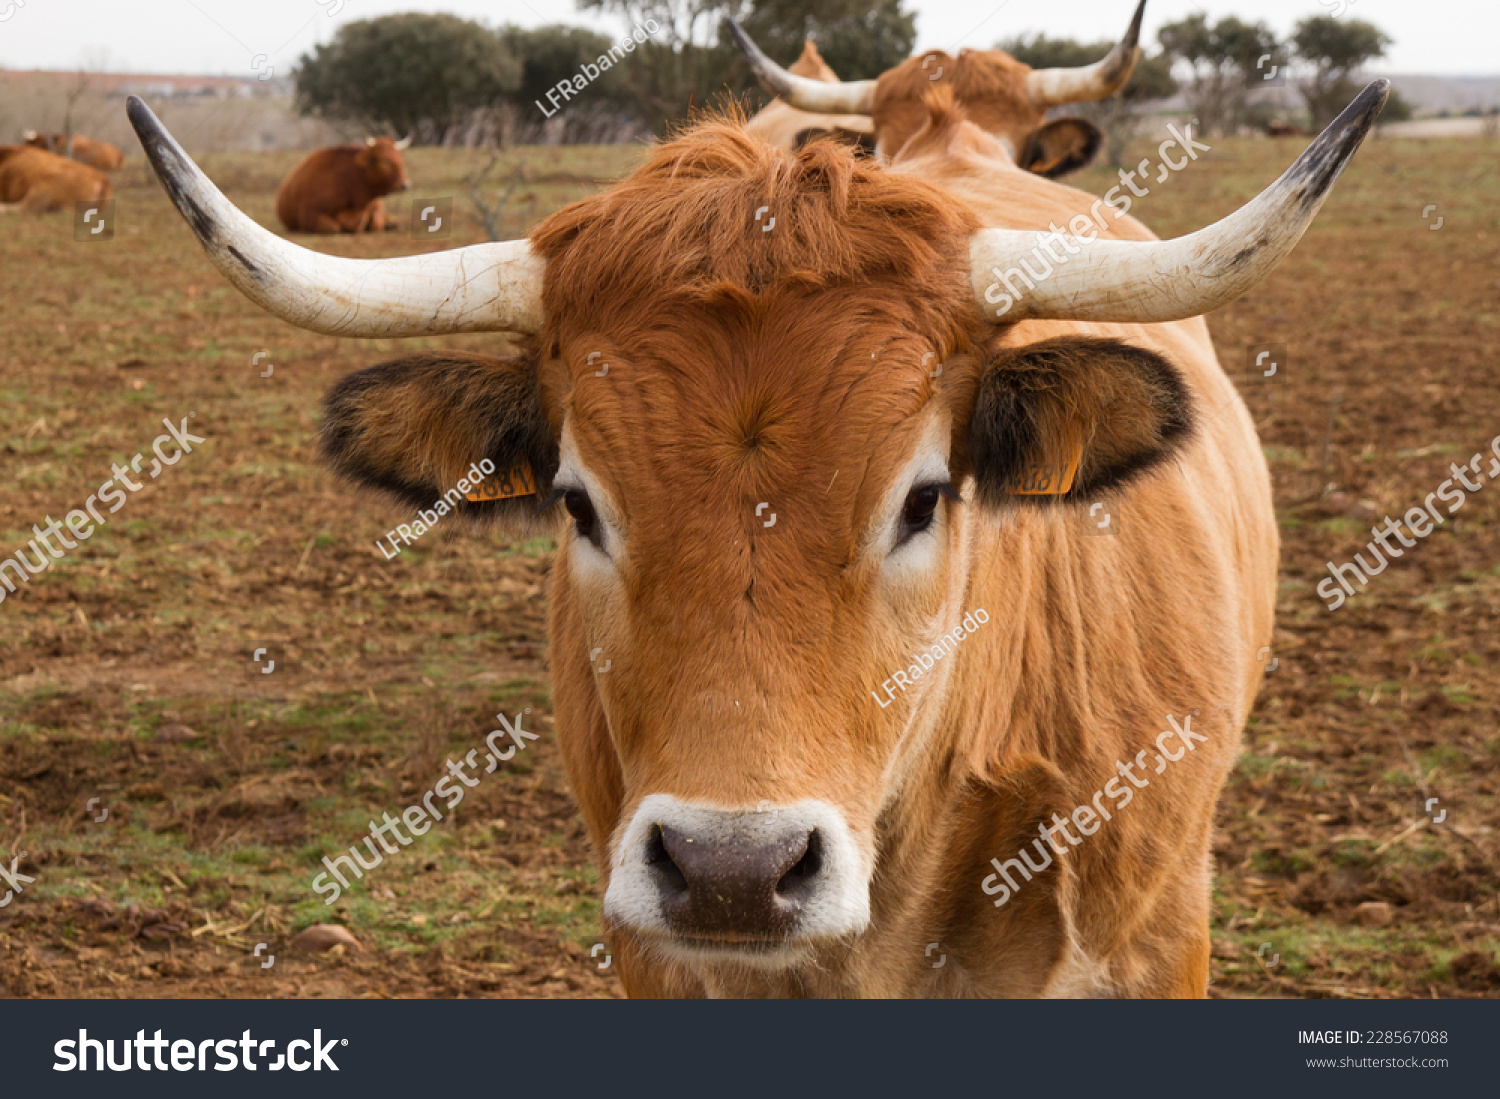 royalty free ox head with horns 228567088 stock photo avopix com